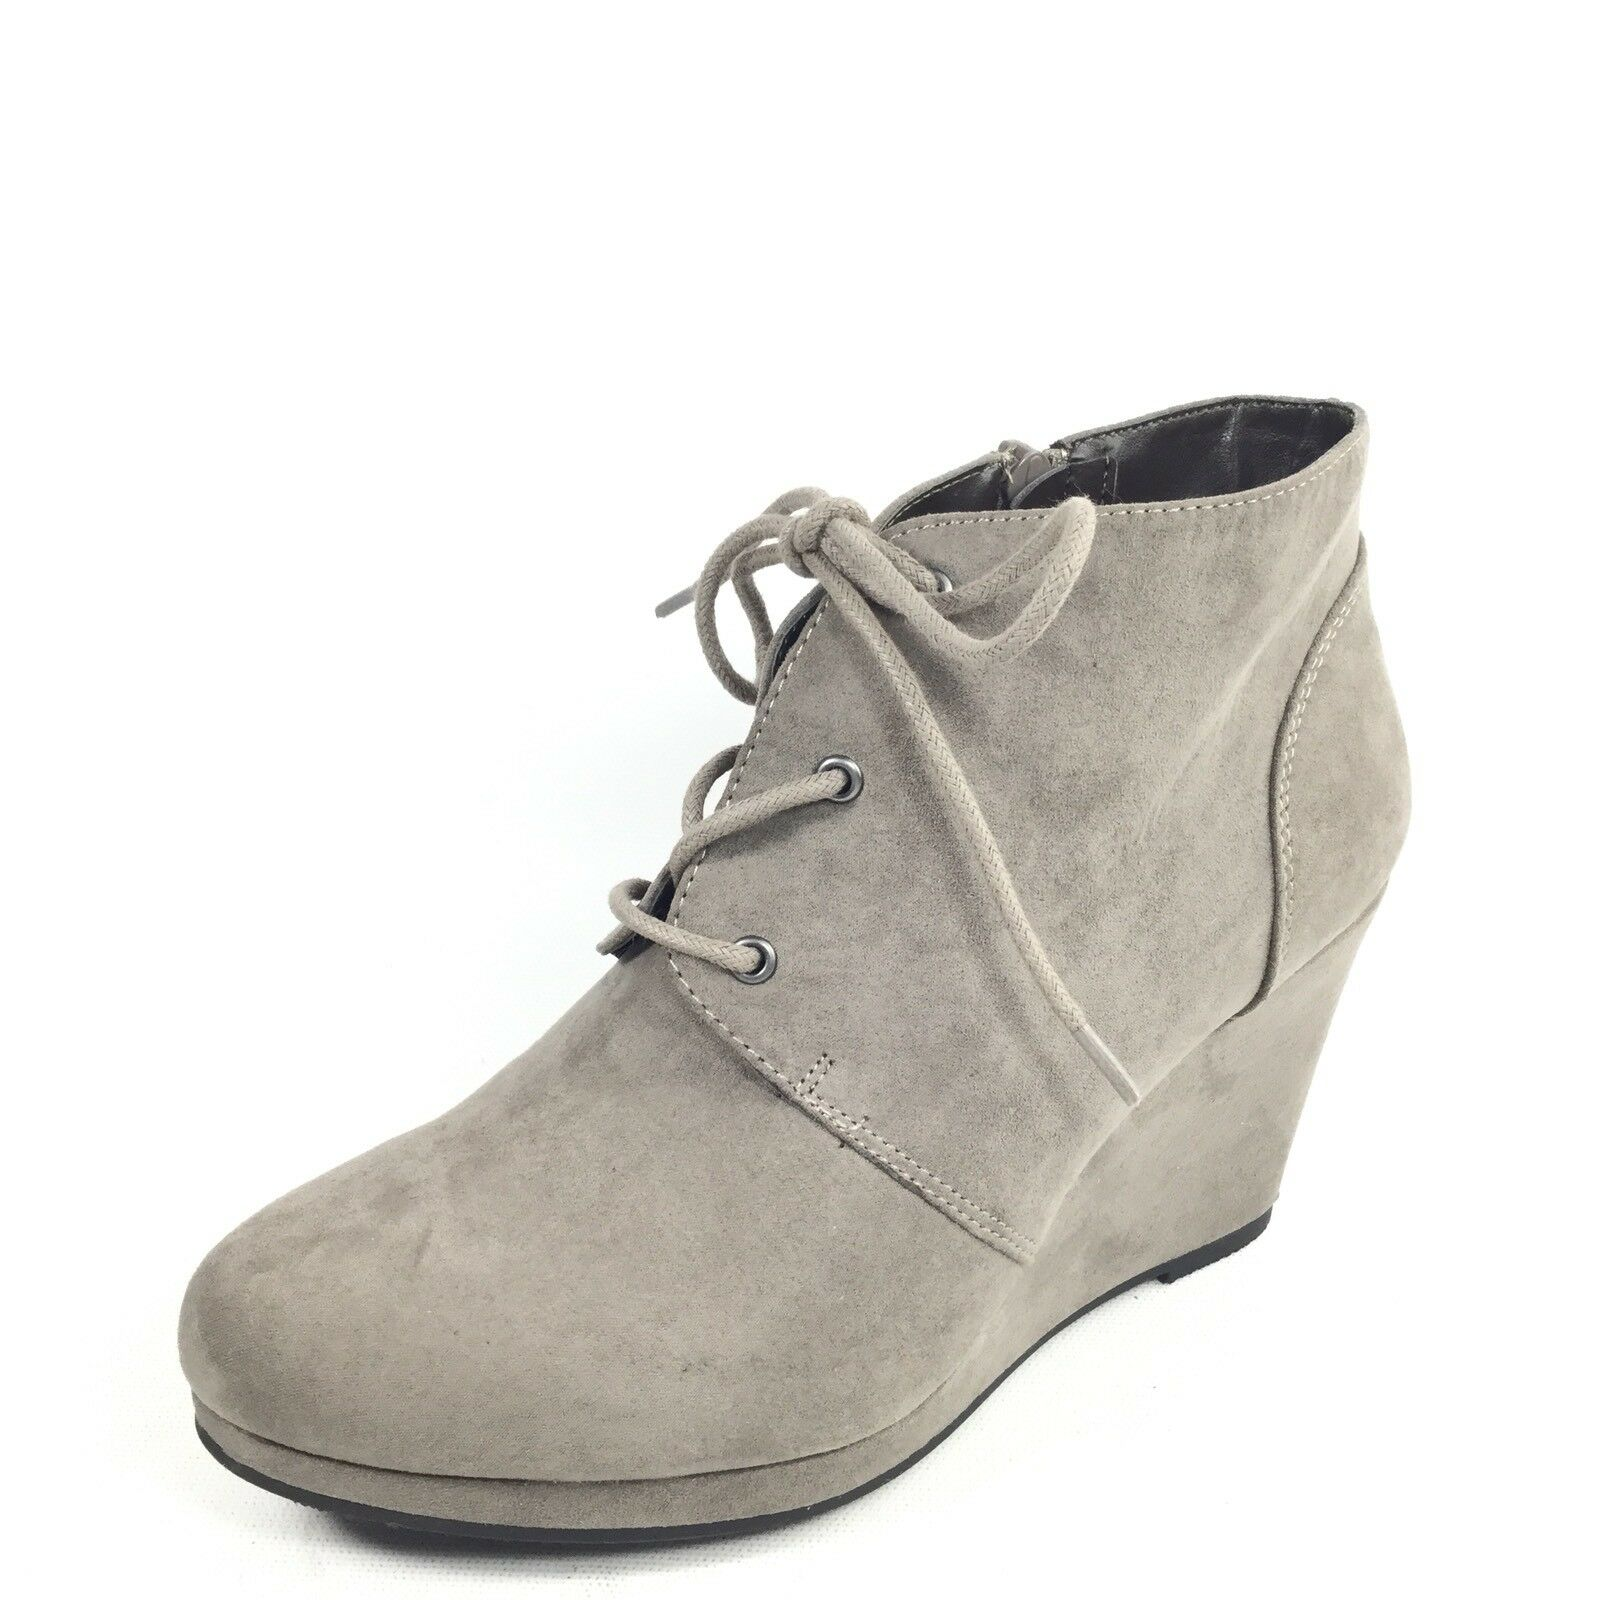 Style & Co Alaisi Womens Size 7.5 M Grey Wedge Zip  Lace Up Ankle Boots